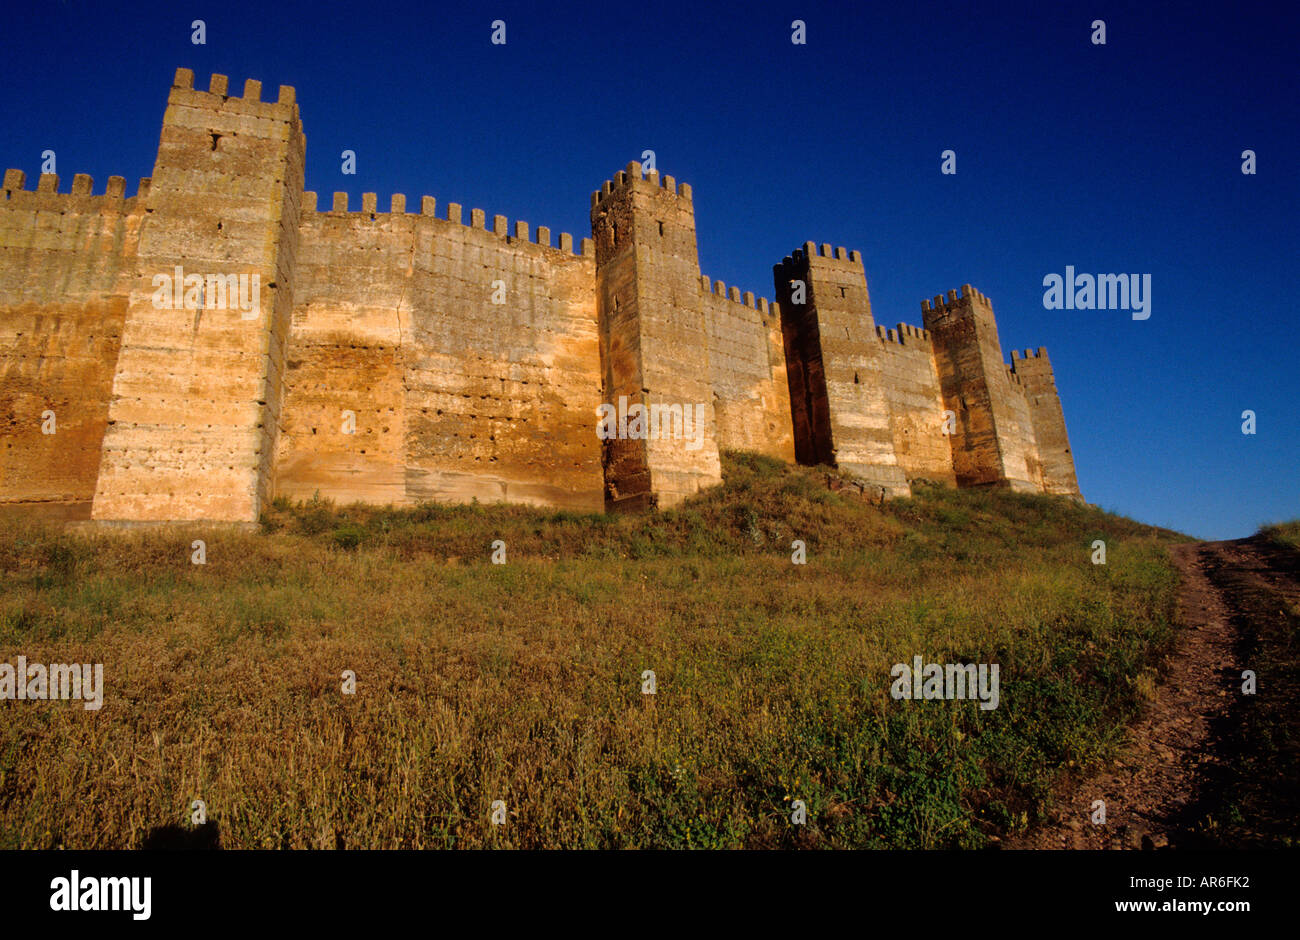 Caliph stock photos caliph stock images alamy - Banos de la encina espana ...